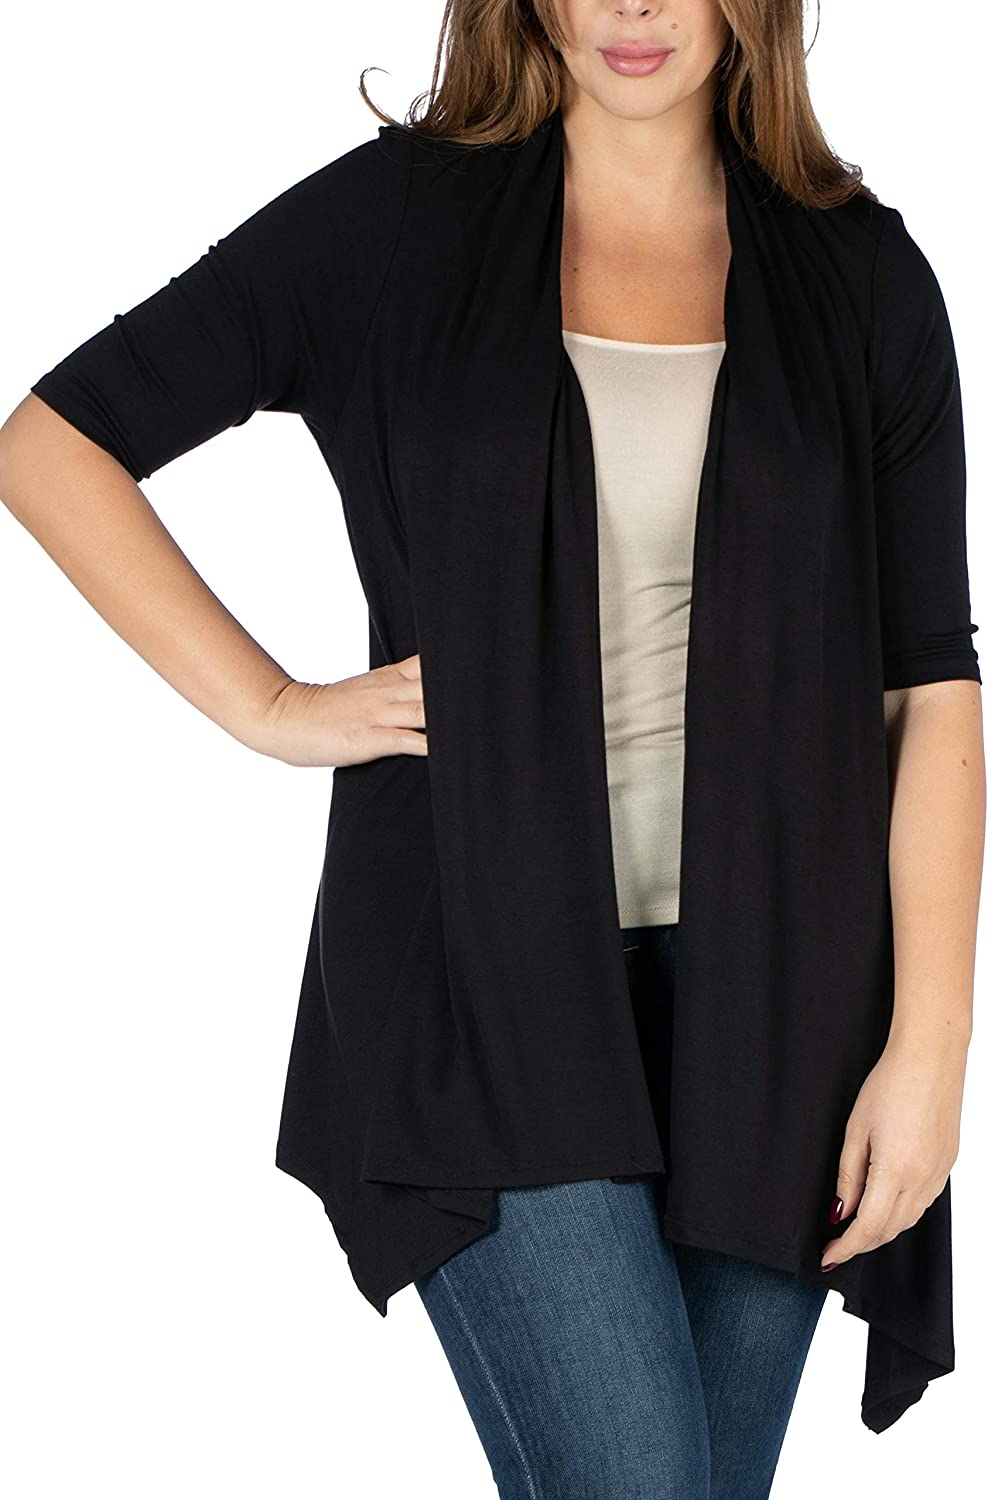 24seven Comfort Apparel Loose Fit Open Front Cardigan with Half Sleeve Made in USA -1X-3X